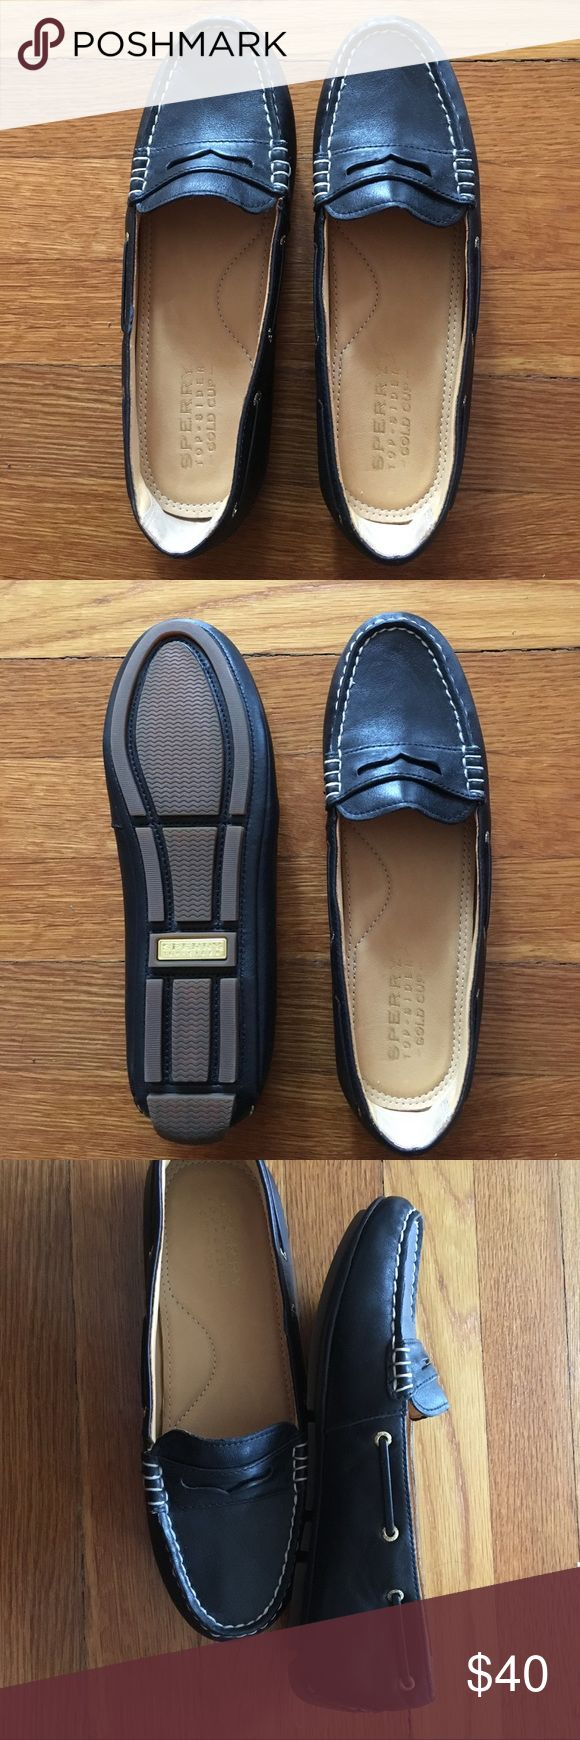 Brand new never worn sperry loafers Sperry gold cup loafers never worn Sperry Top-Sider Shoes